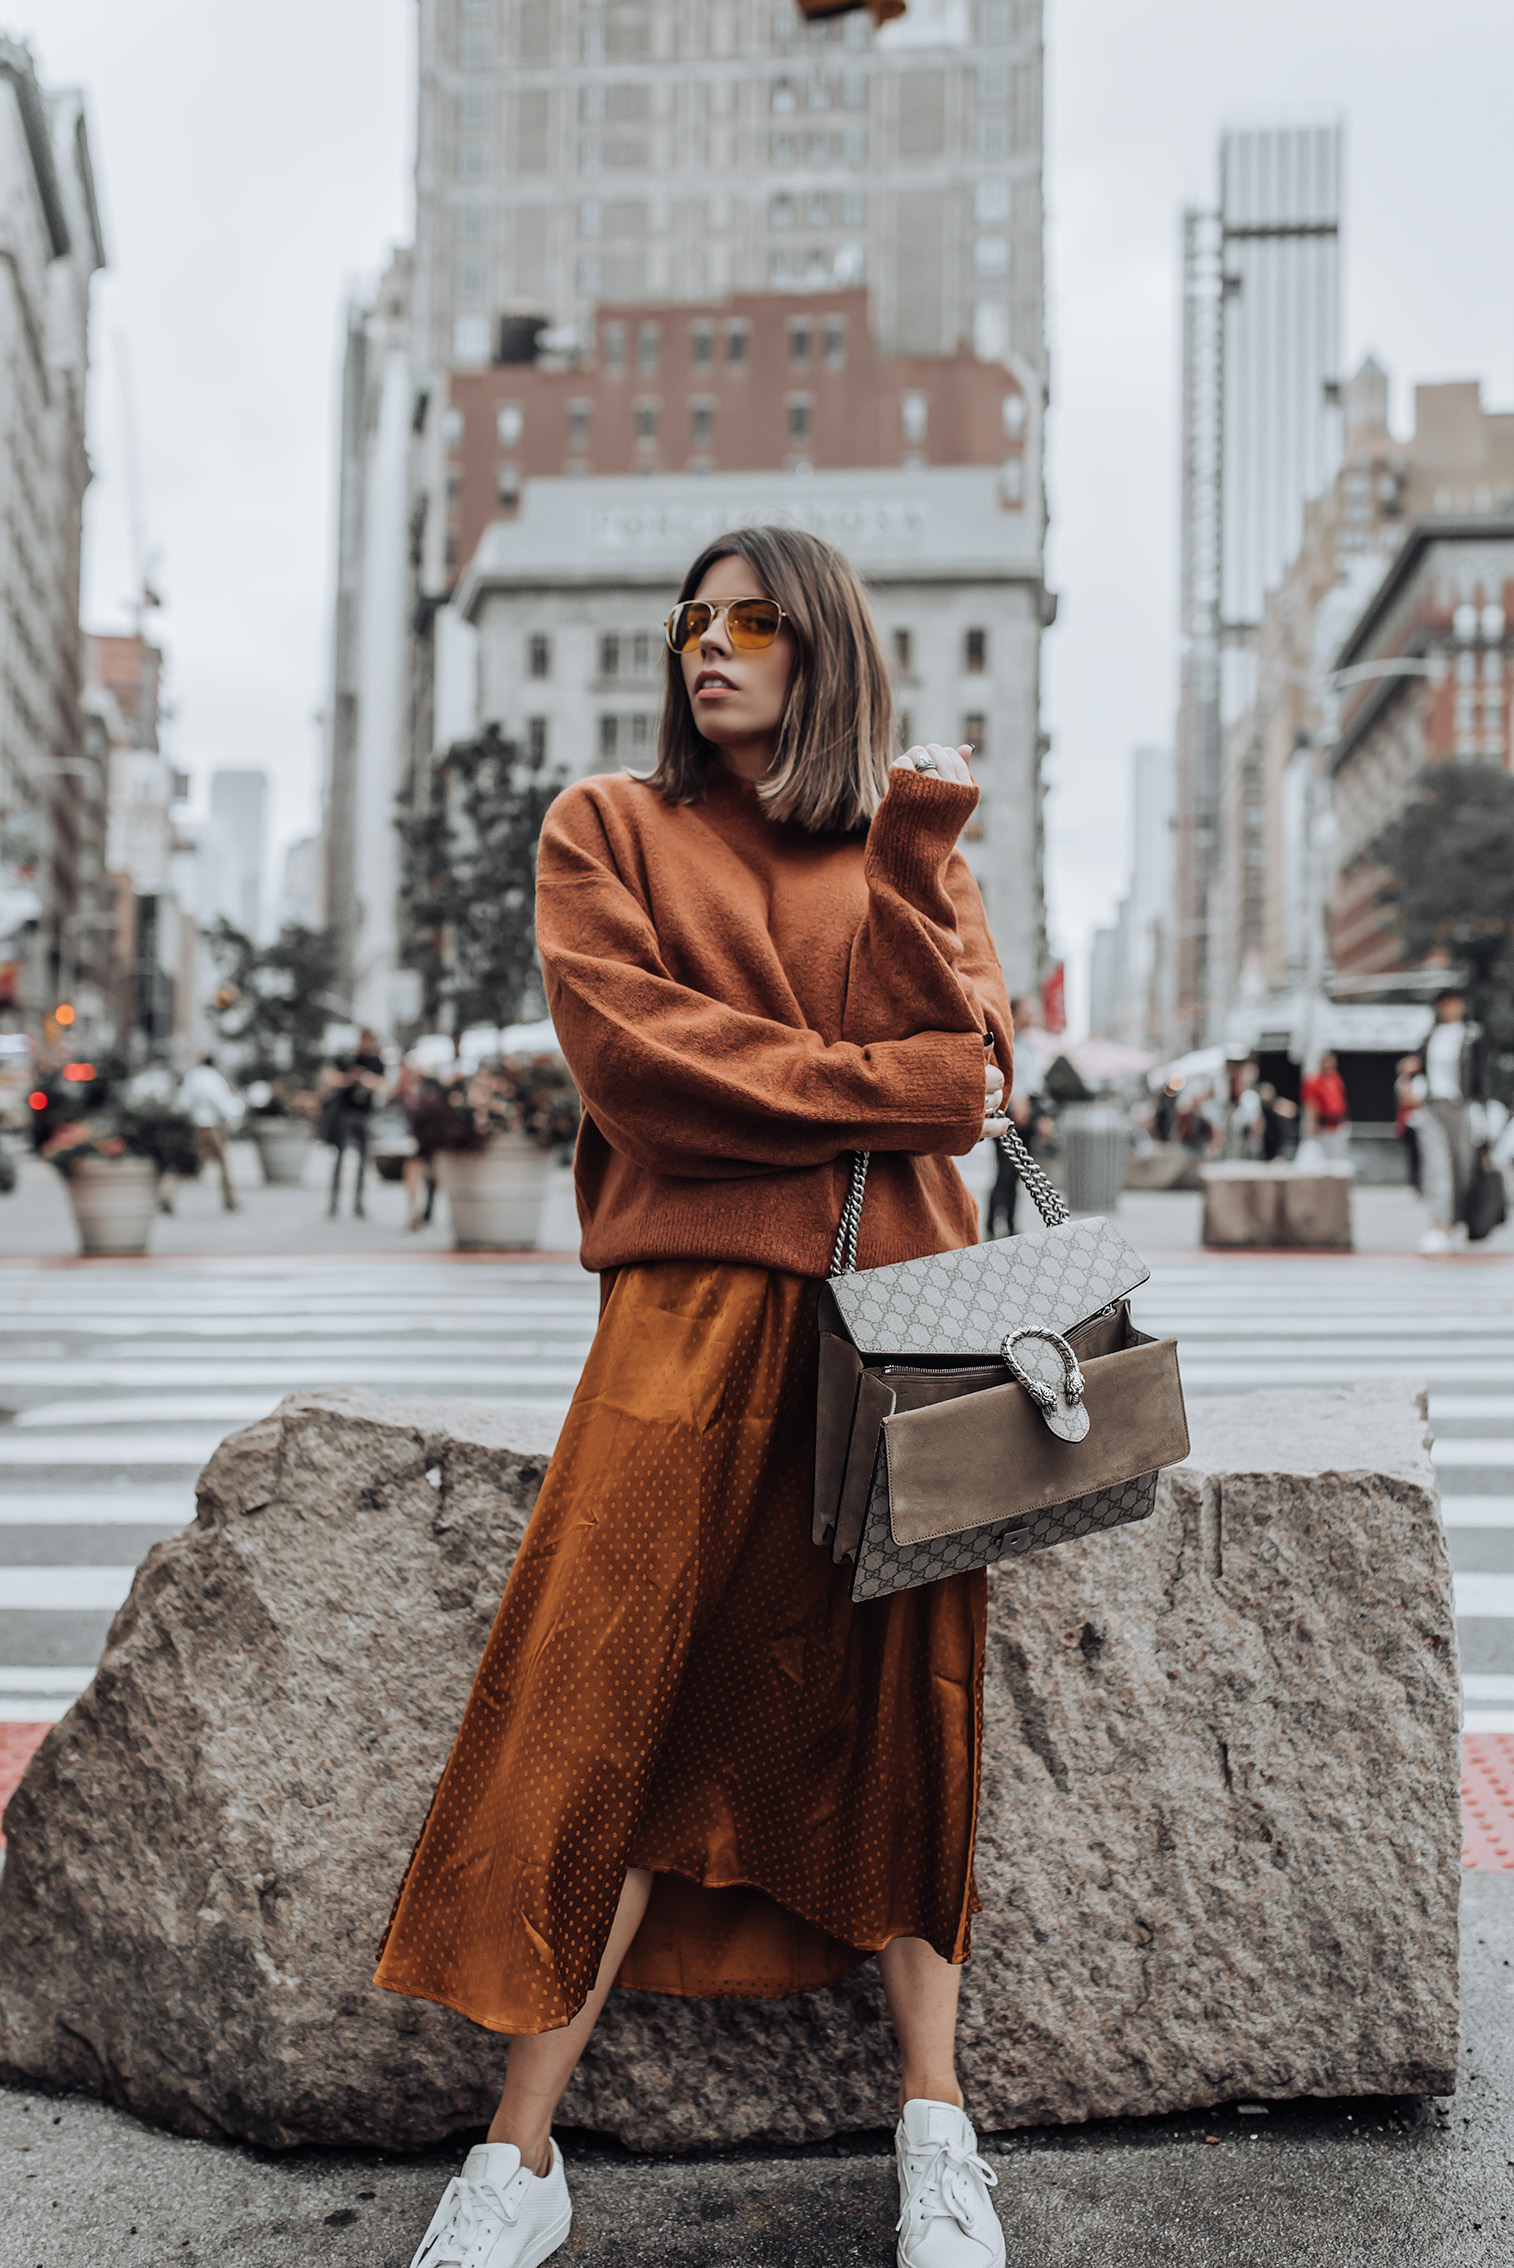 Fall tones | Midi Dress | Mock Neck Sweater | Gucci Bag | Glasses #streetstyle #ootd #liketkit #gucci